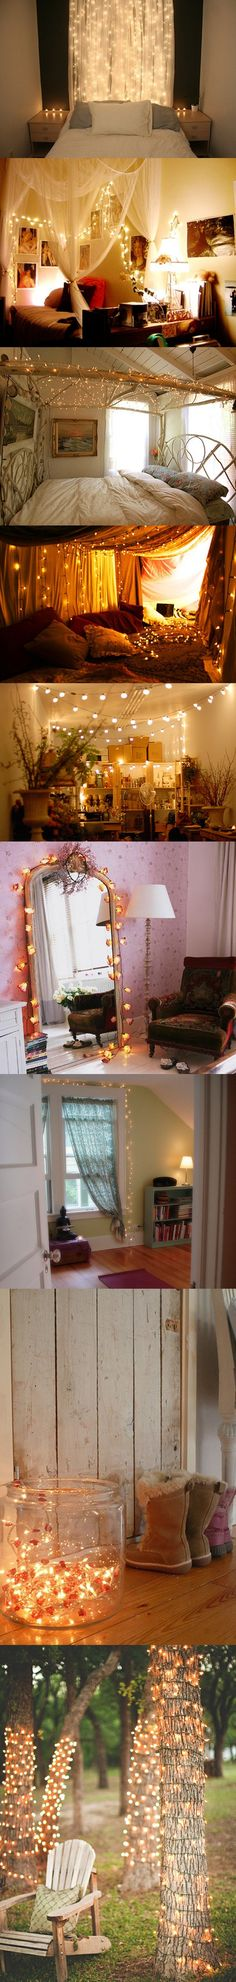 Different ways to use christmas lights in your home year round! Love it. Looks like a fairytale.